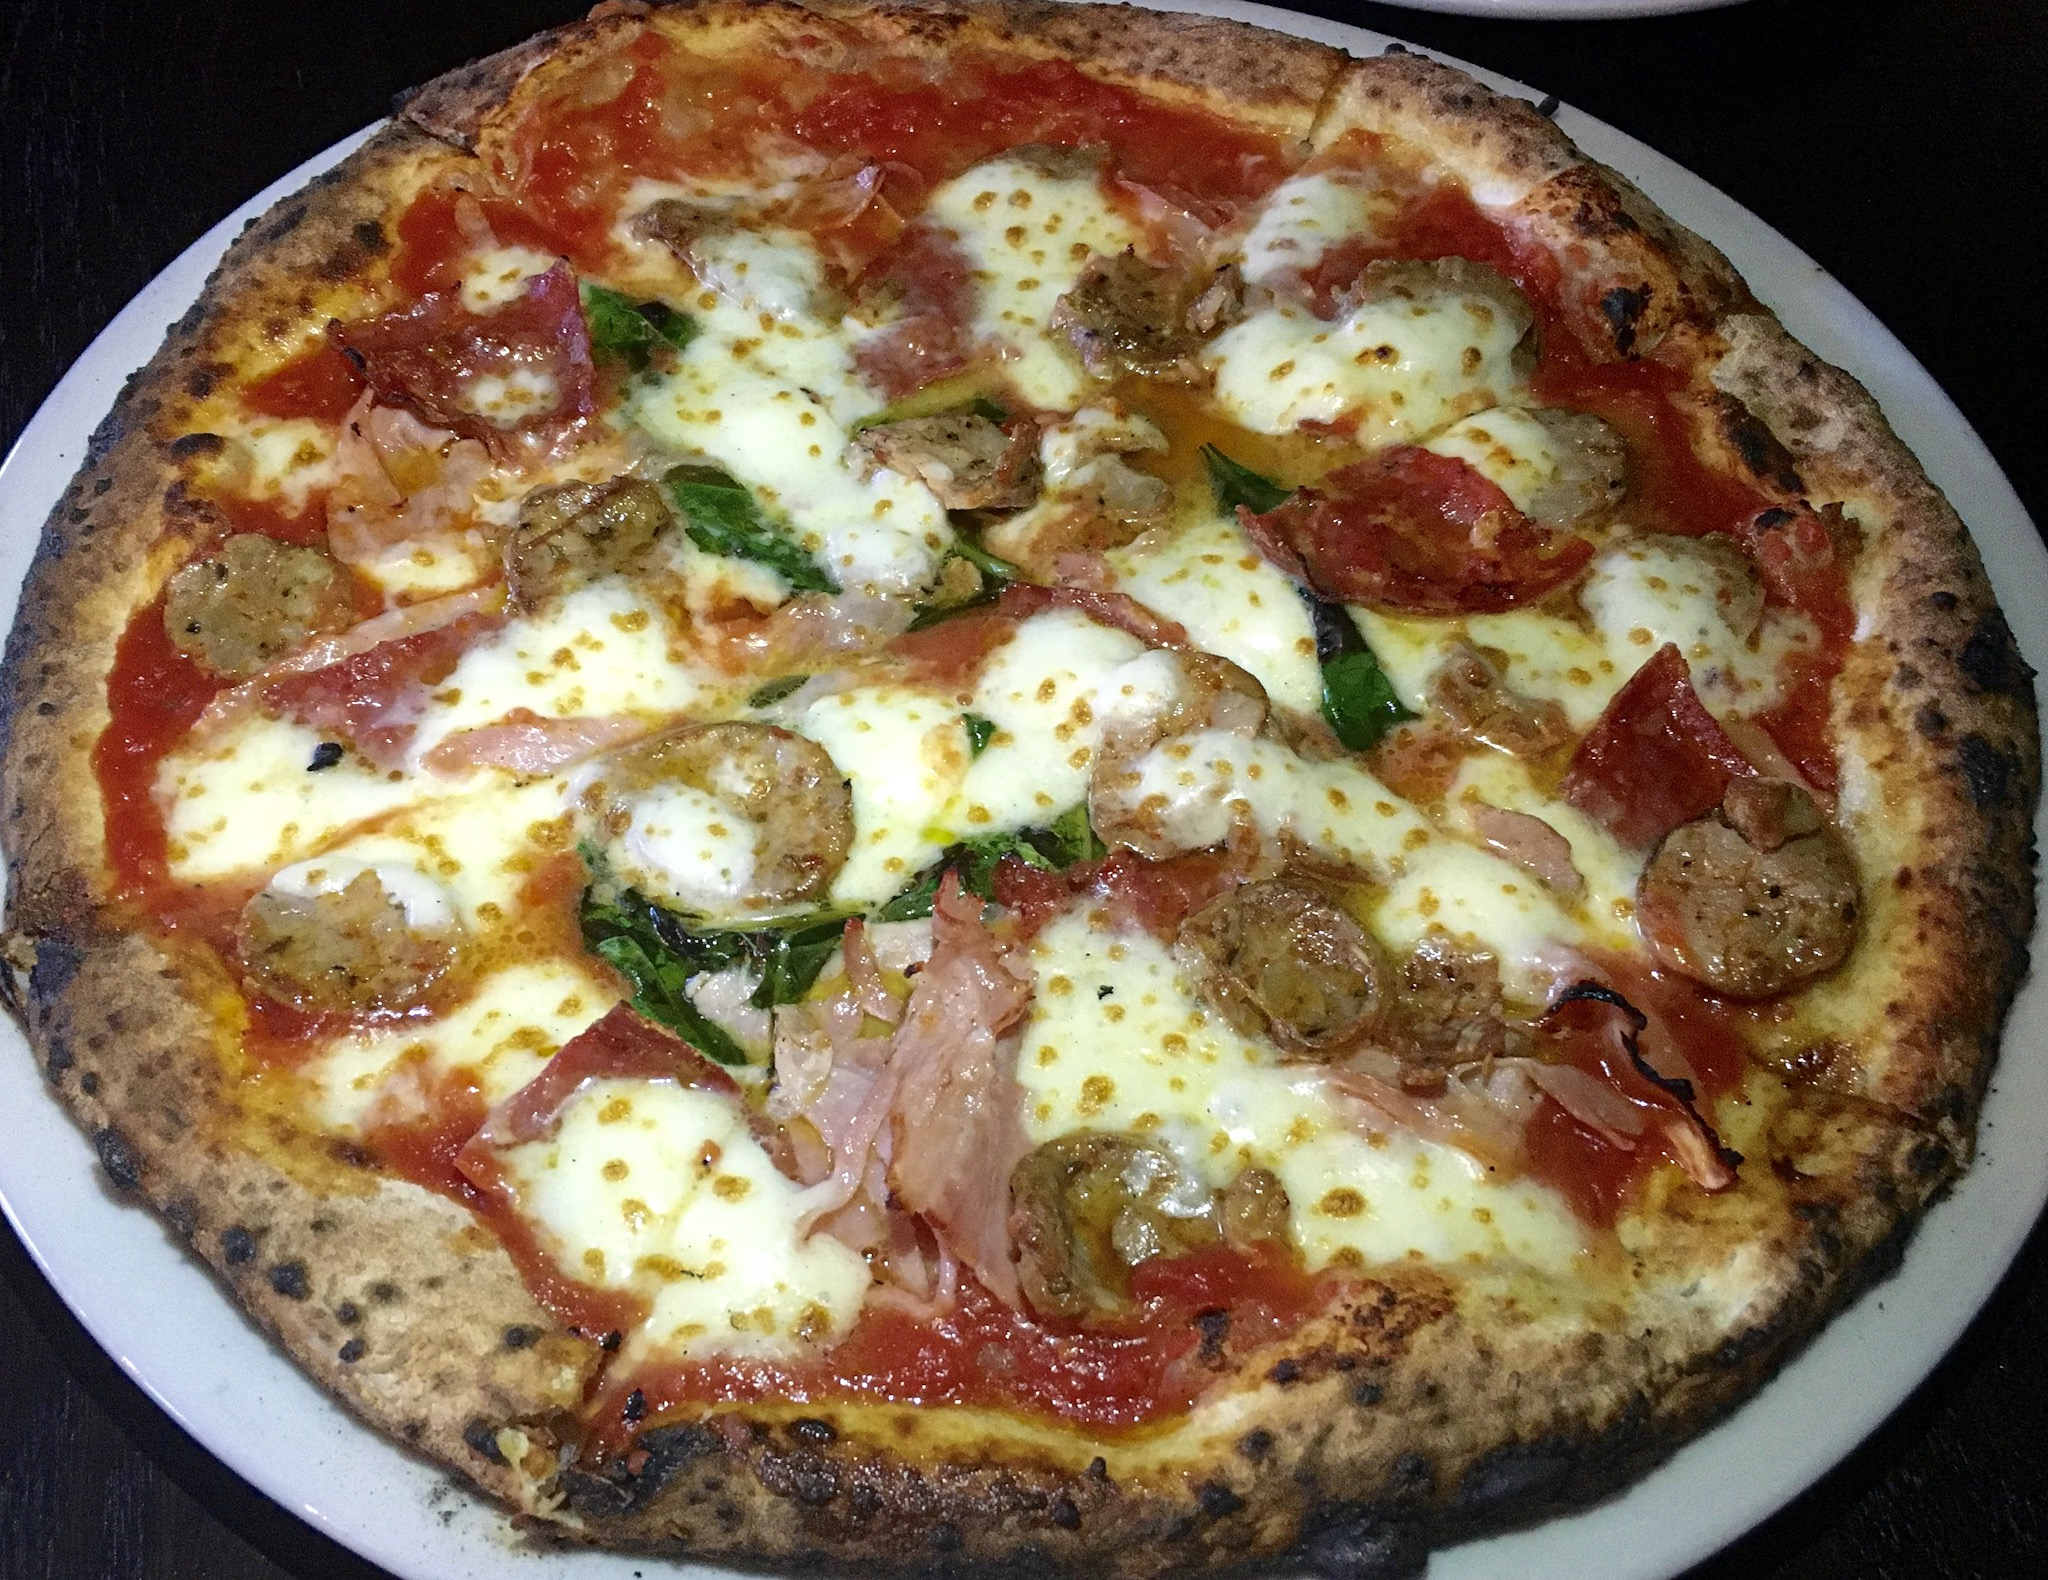 Tre-Carne Pizza with San Marzano Tomato, fior de latte, Soppressata, Prosciutto cotto, spicy Italian Sausage, Basil and Extra-Virgin Olive Oil